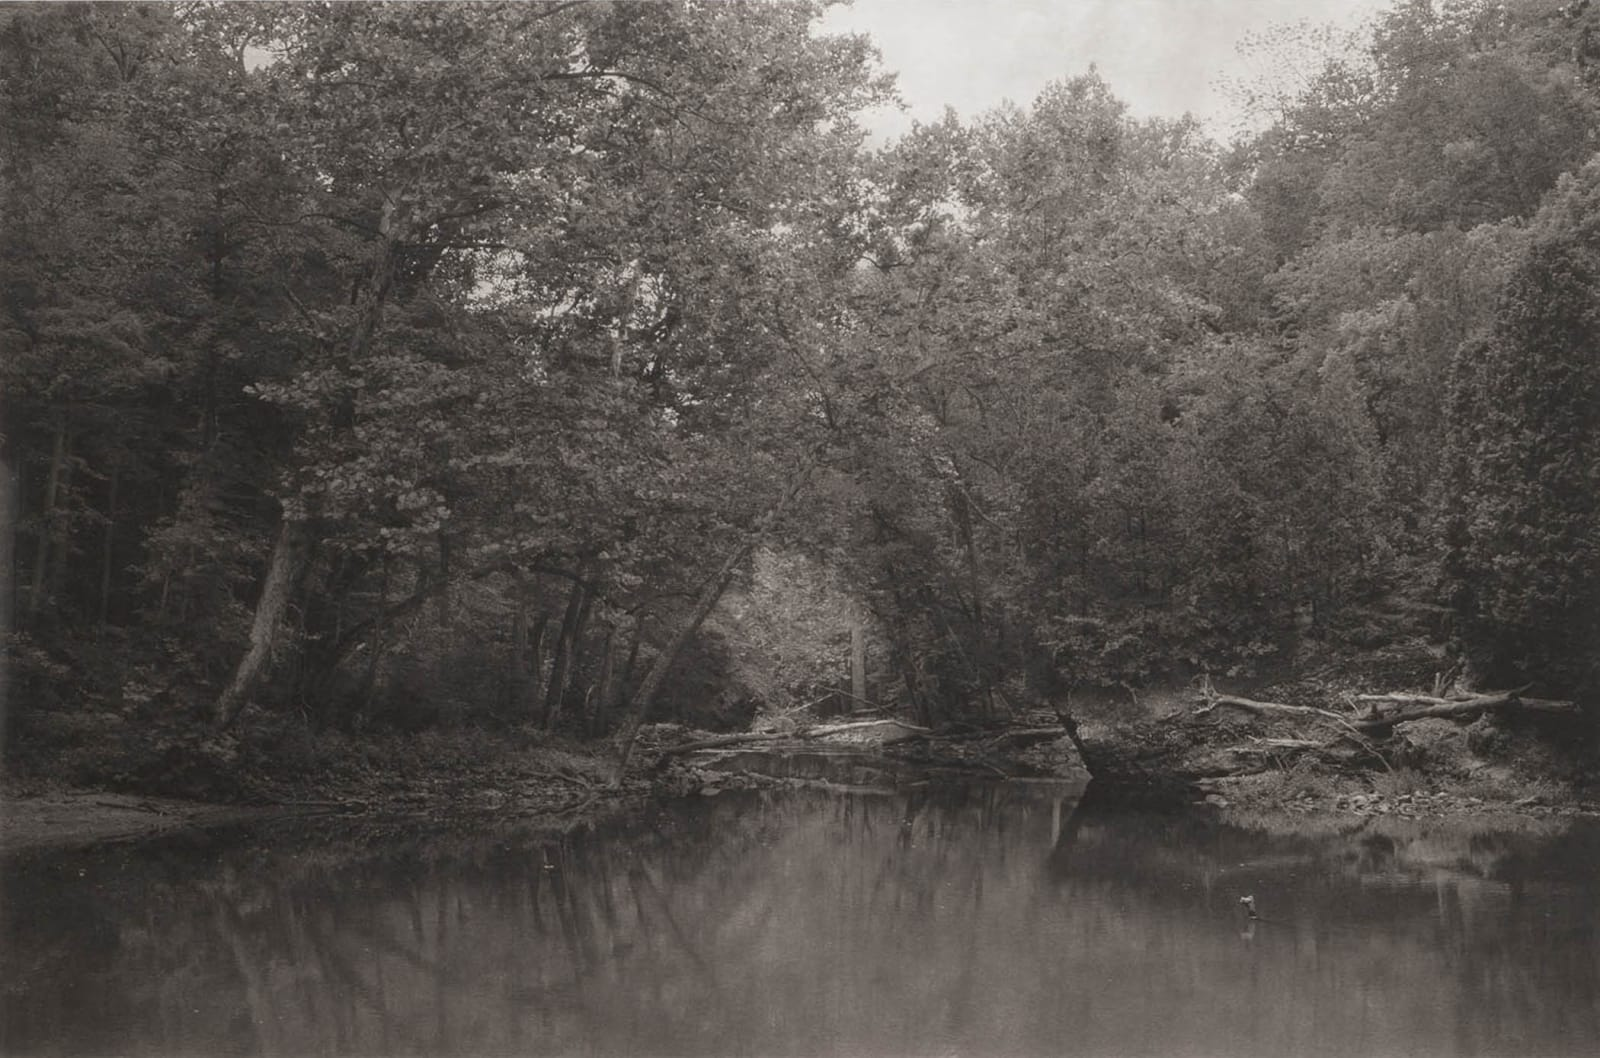 David Hartt The Histories (after Duncanson) 2020 Photogravure from a 18 1/4 x 27 inch plate 22 1/4 x 31 inches Edition of 10 and 1AP